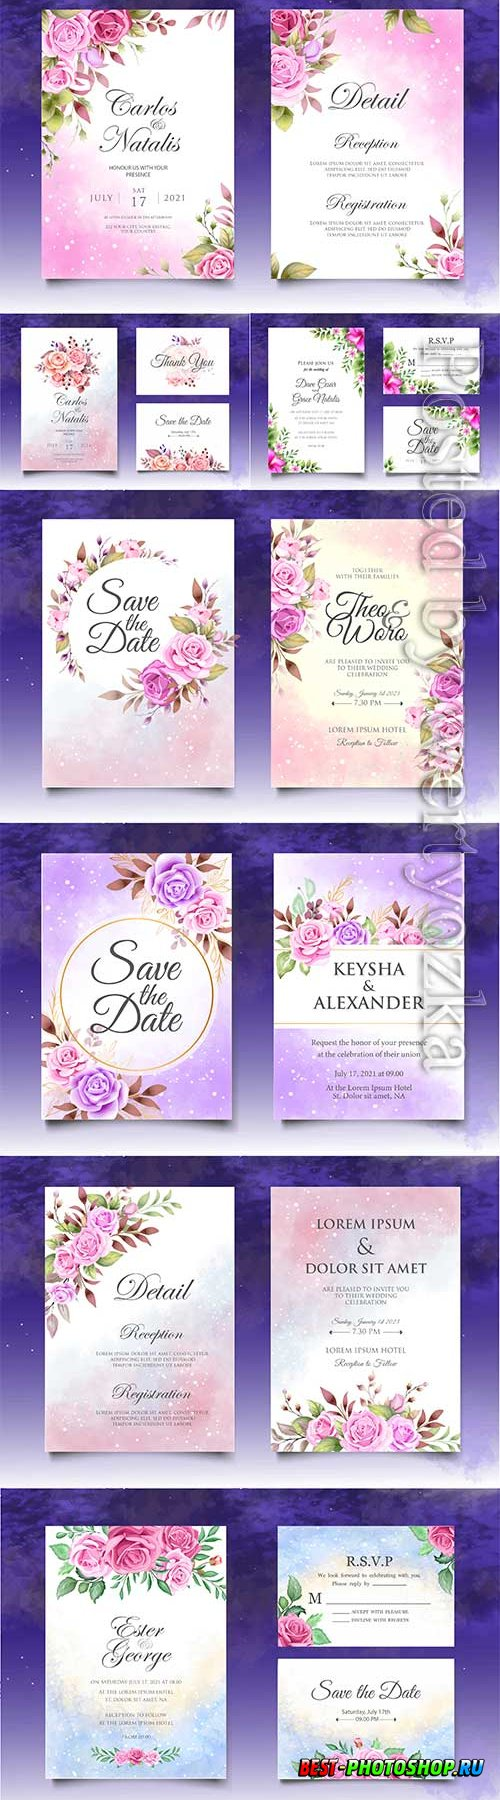 Wedding invitation with red and purple roses